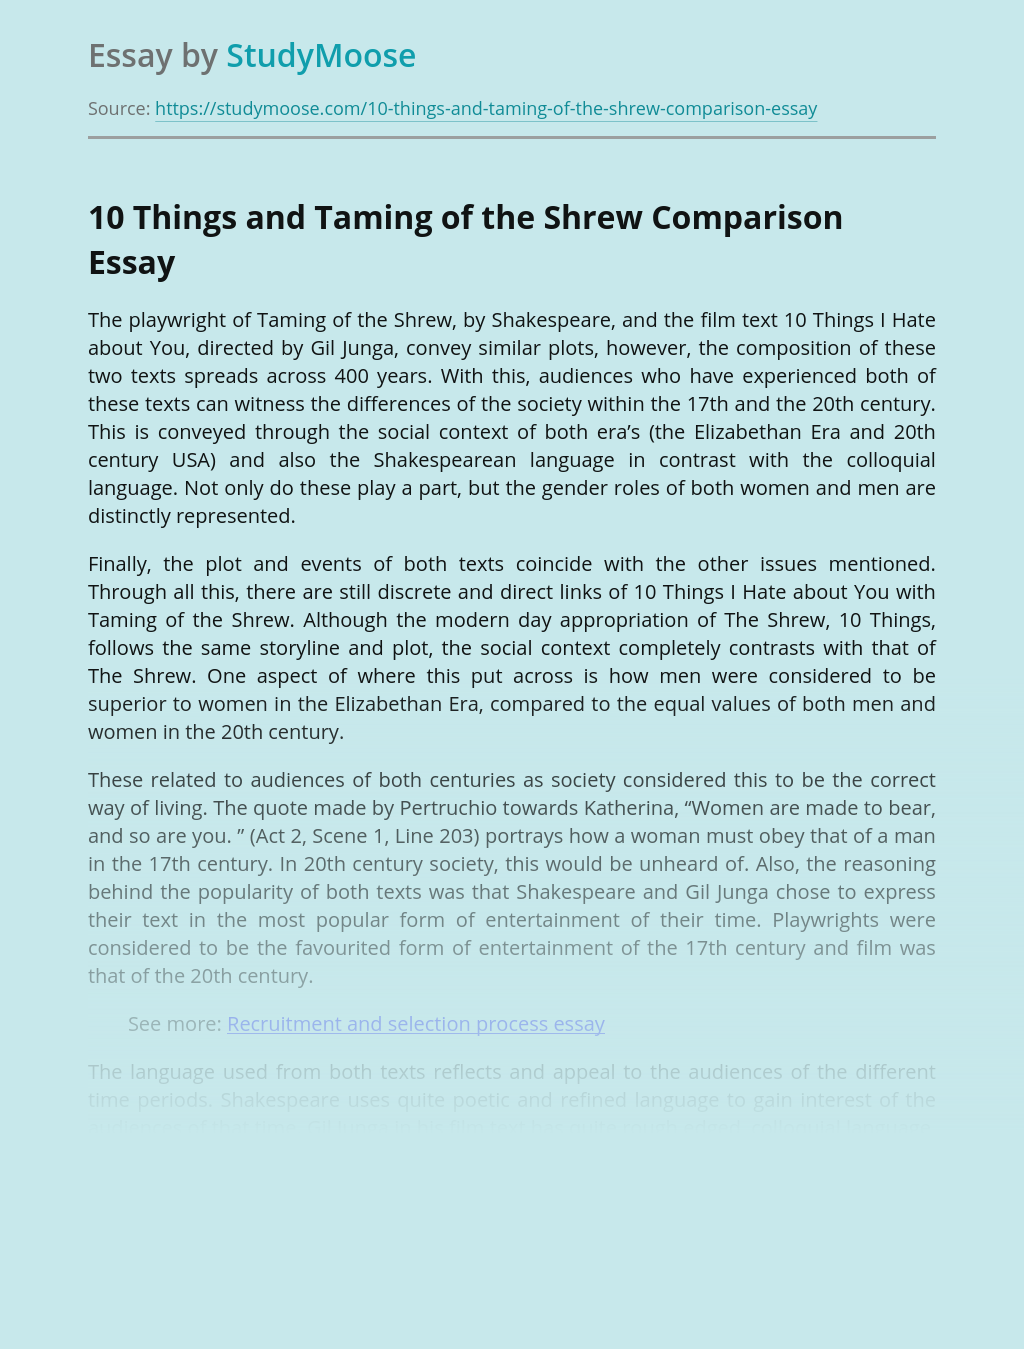 10 Things and Taming of the Shrew Comparison